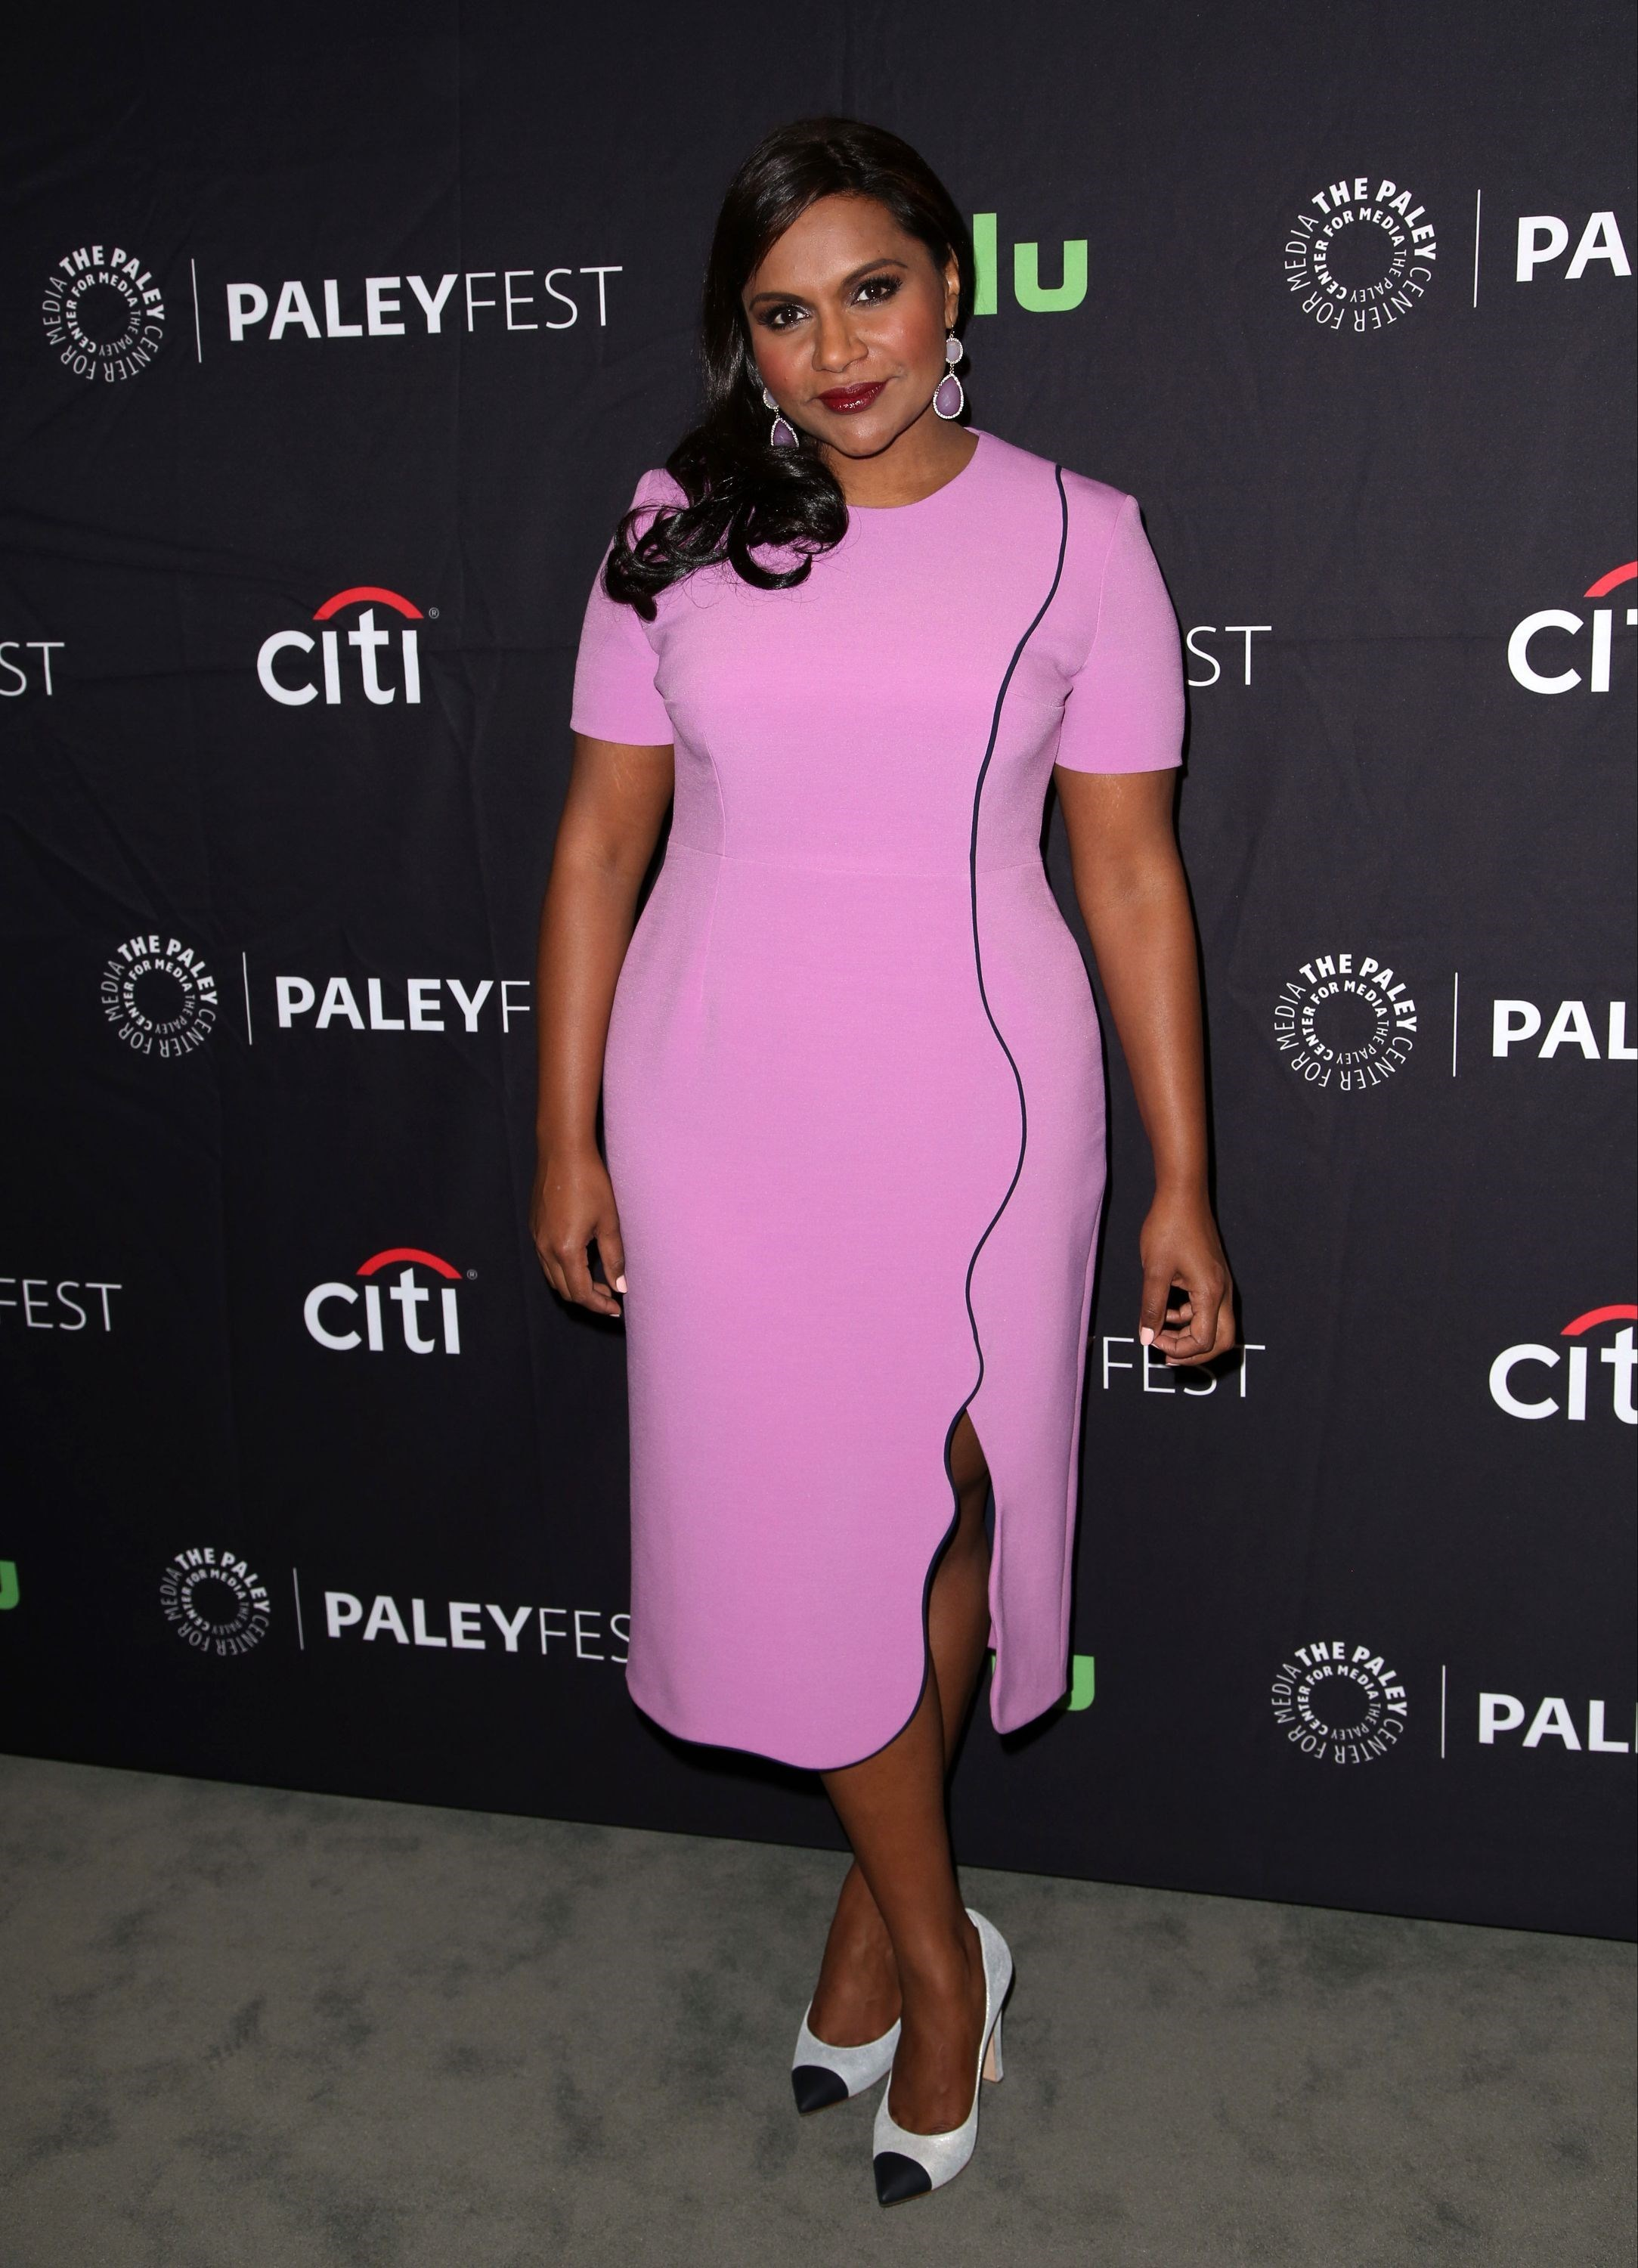 Mindy Kaling: 'I have so many bad habits'